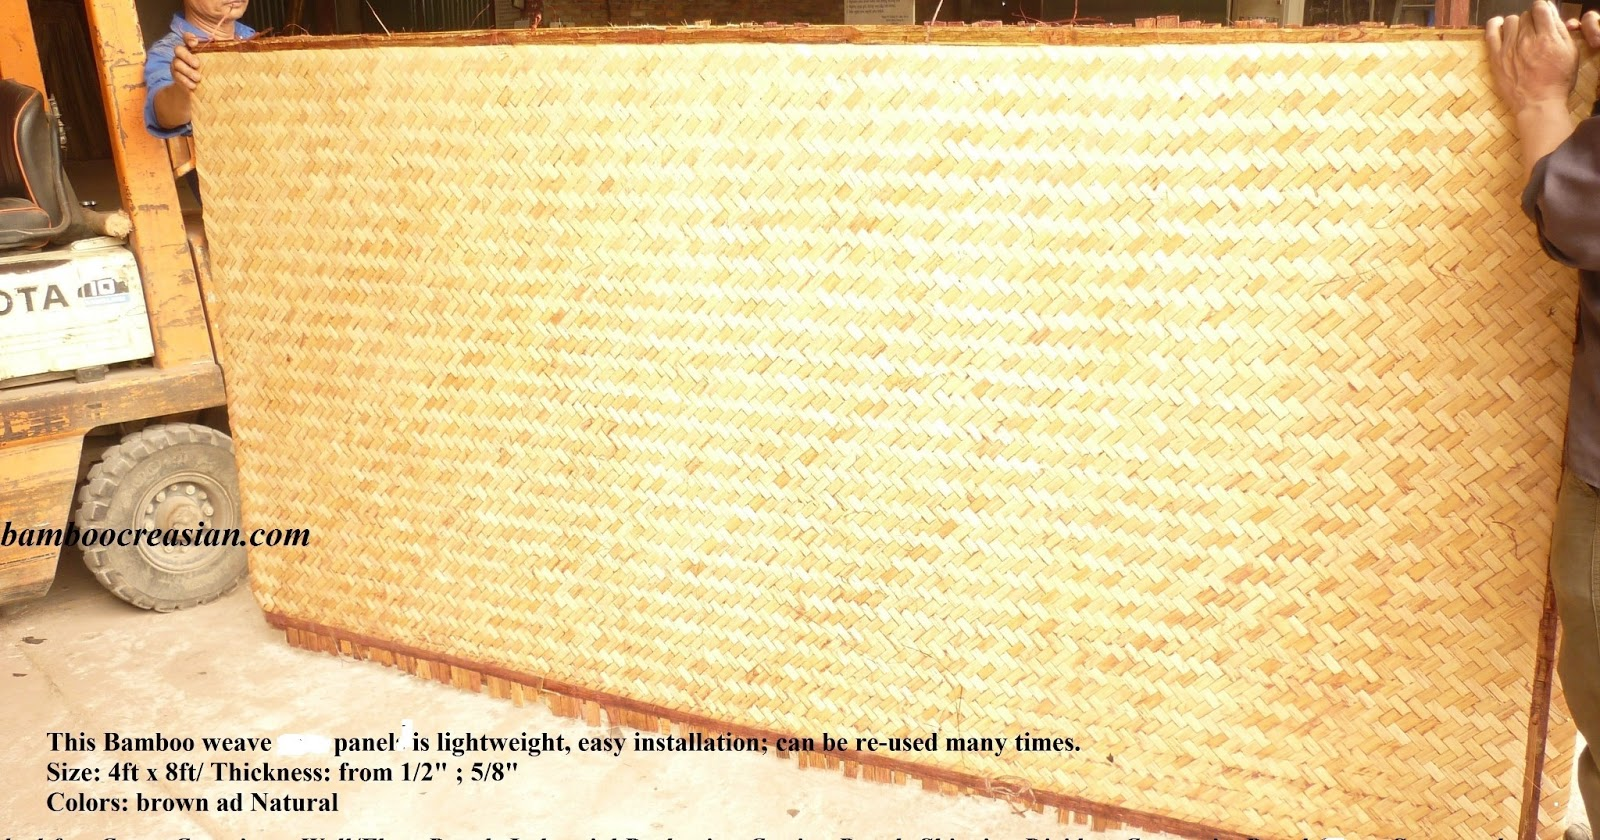 Quality Bamboo and Asian Thatch: Waterproof Bamboo Panels for ...